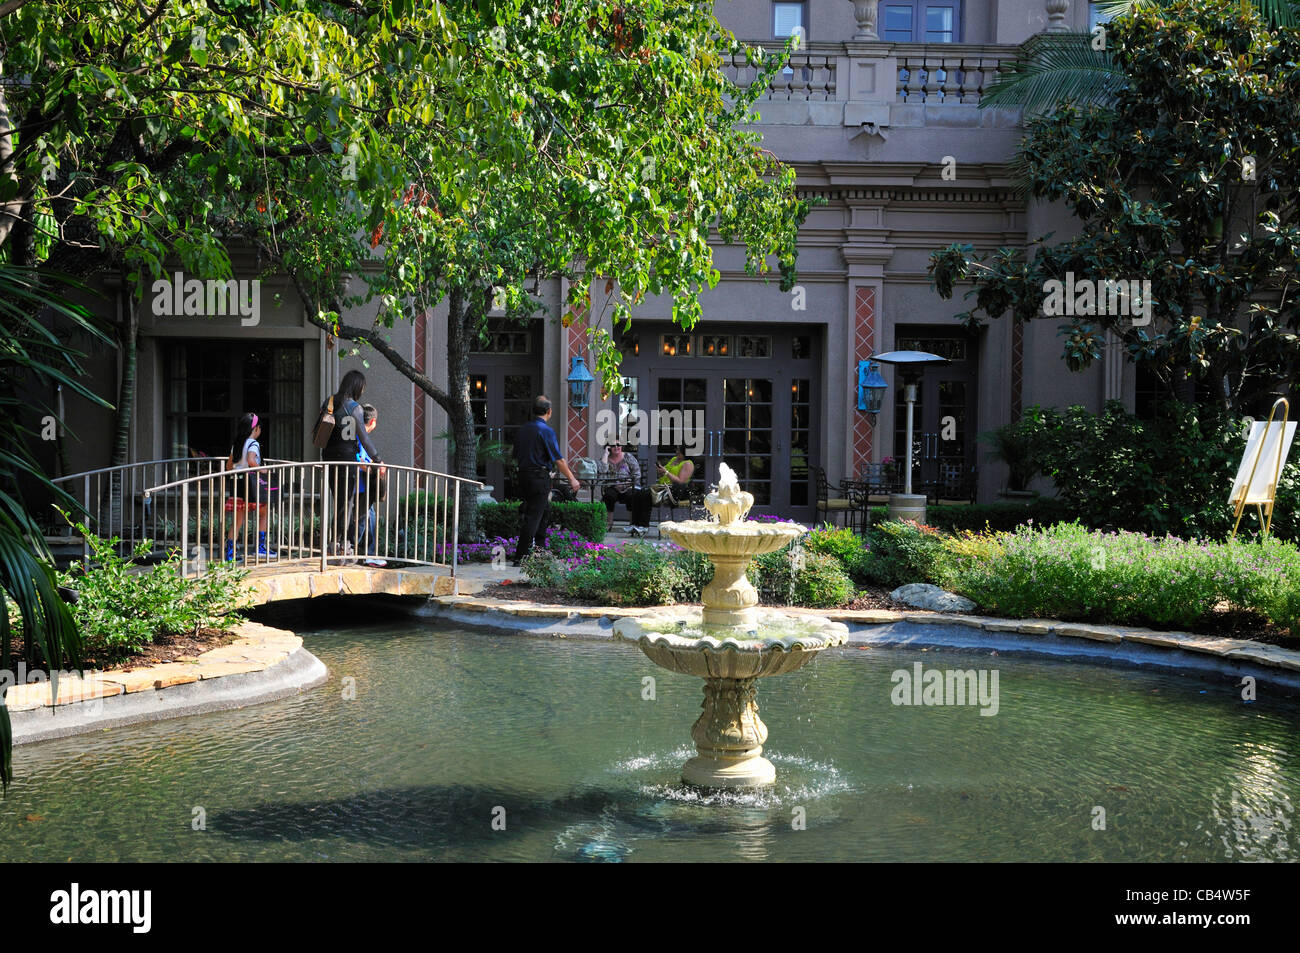 Part Of The Outdoor Patio Of The Langham Huntington Hotel, Pasadena,  California, Showing